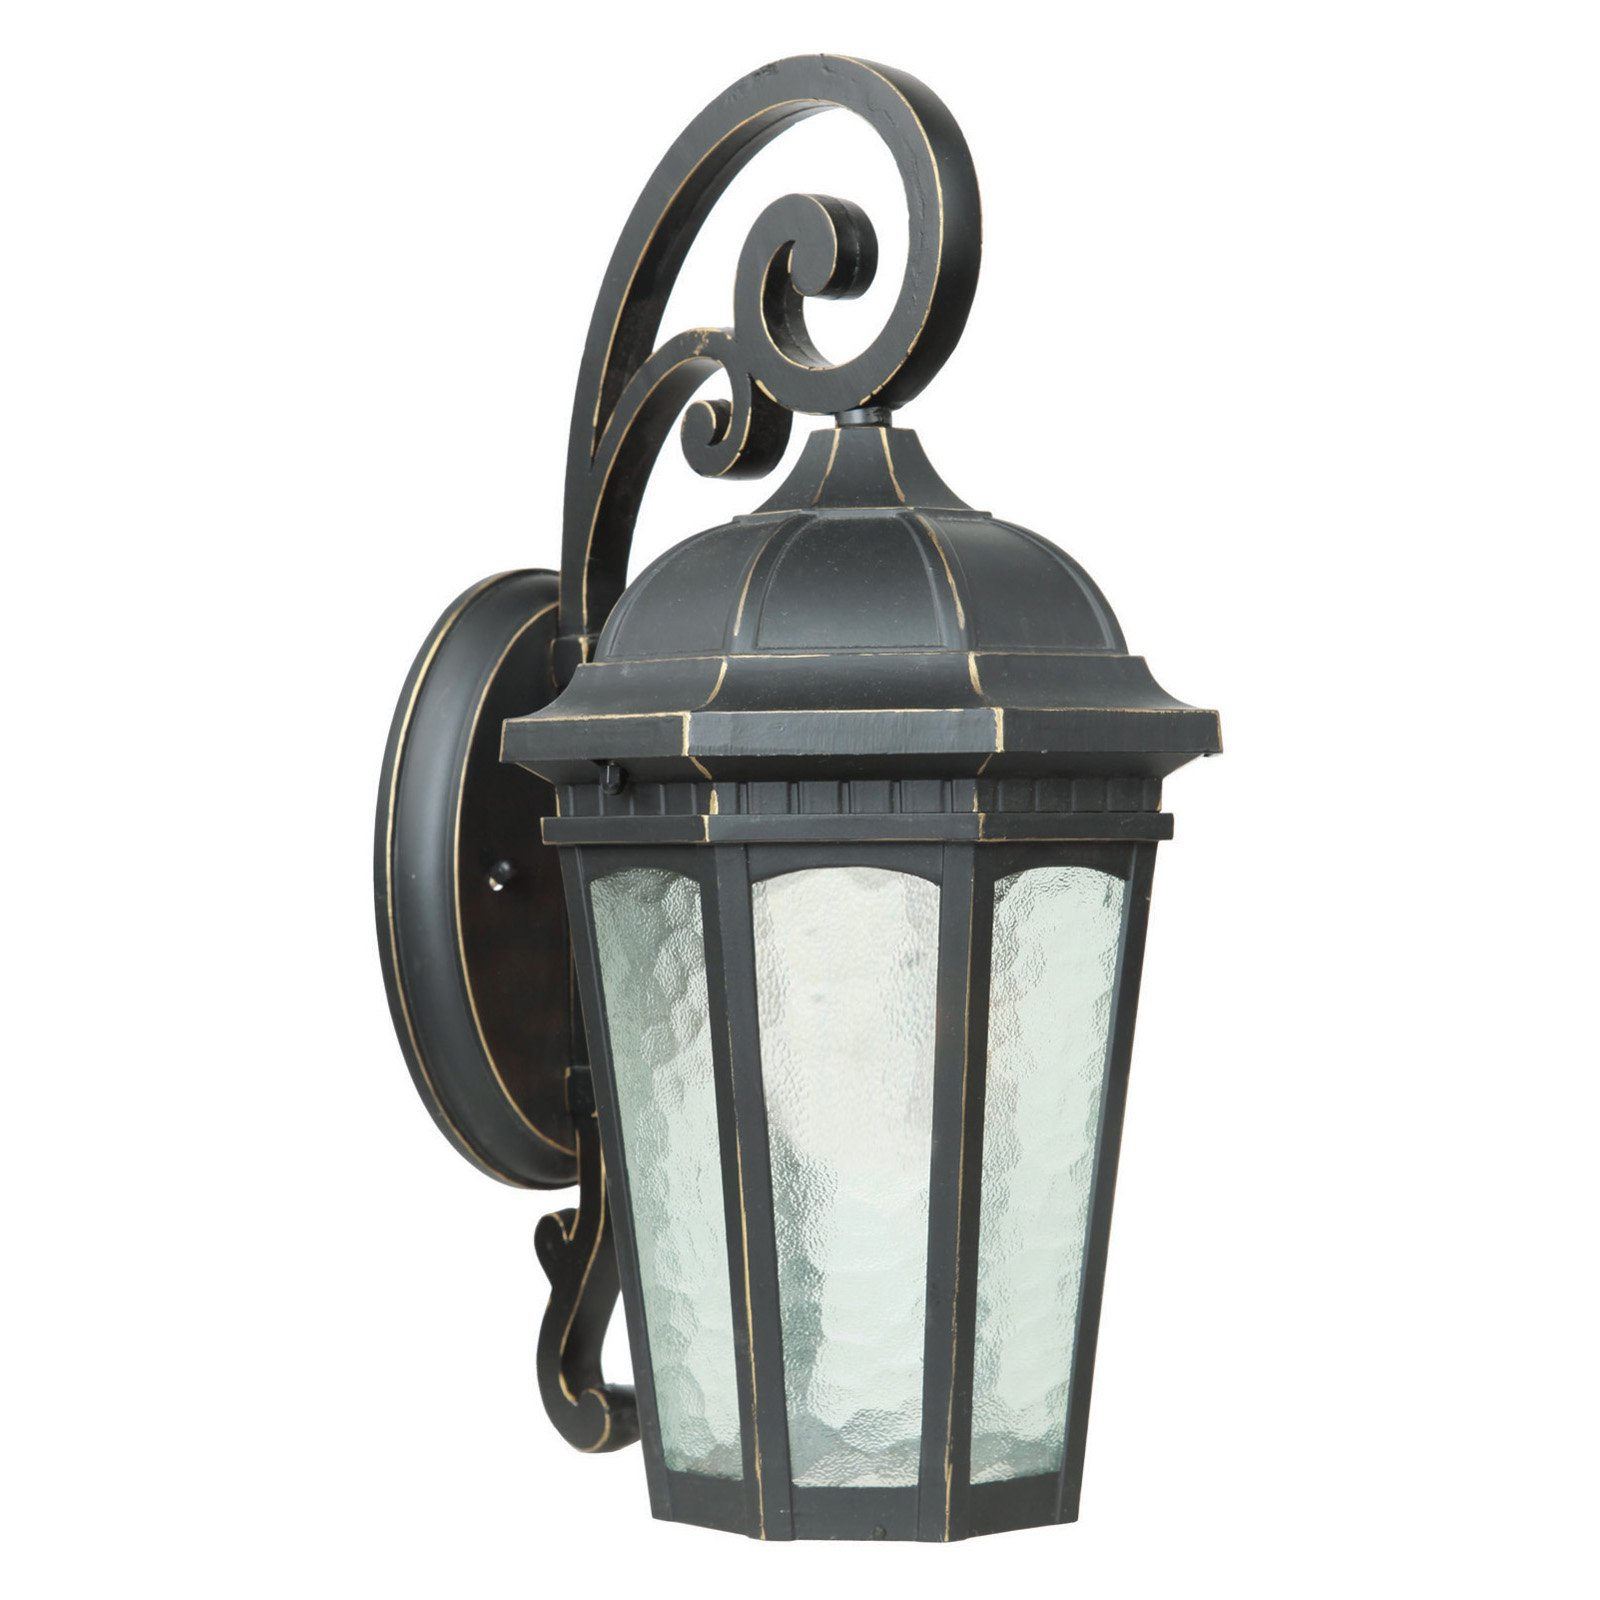 Yosemite Home Decor Minarets Lake FL1618 Fluorescent Outdoor Wall Sconce